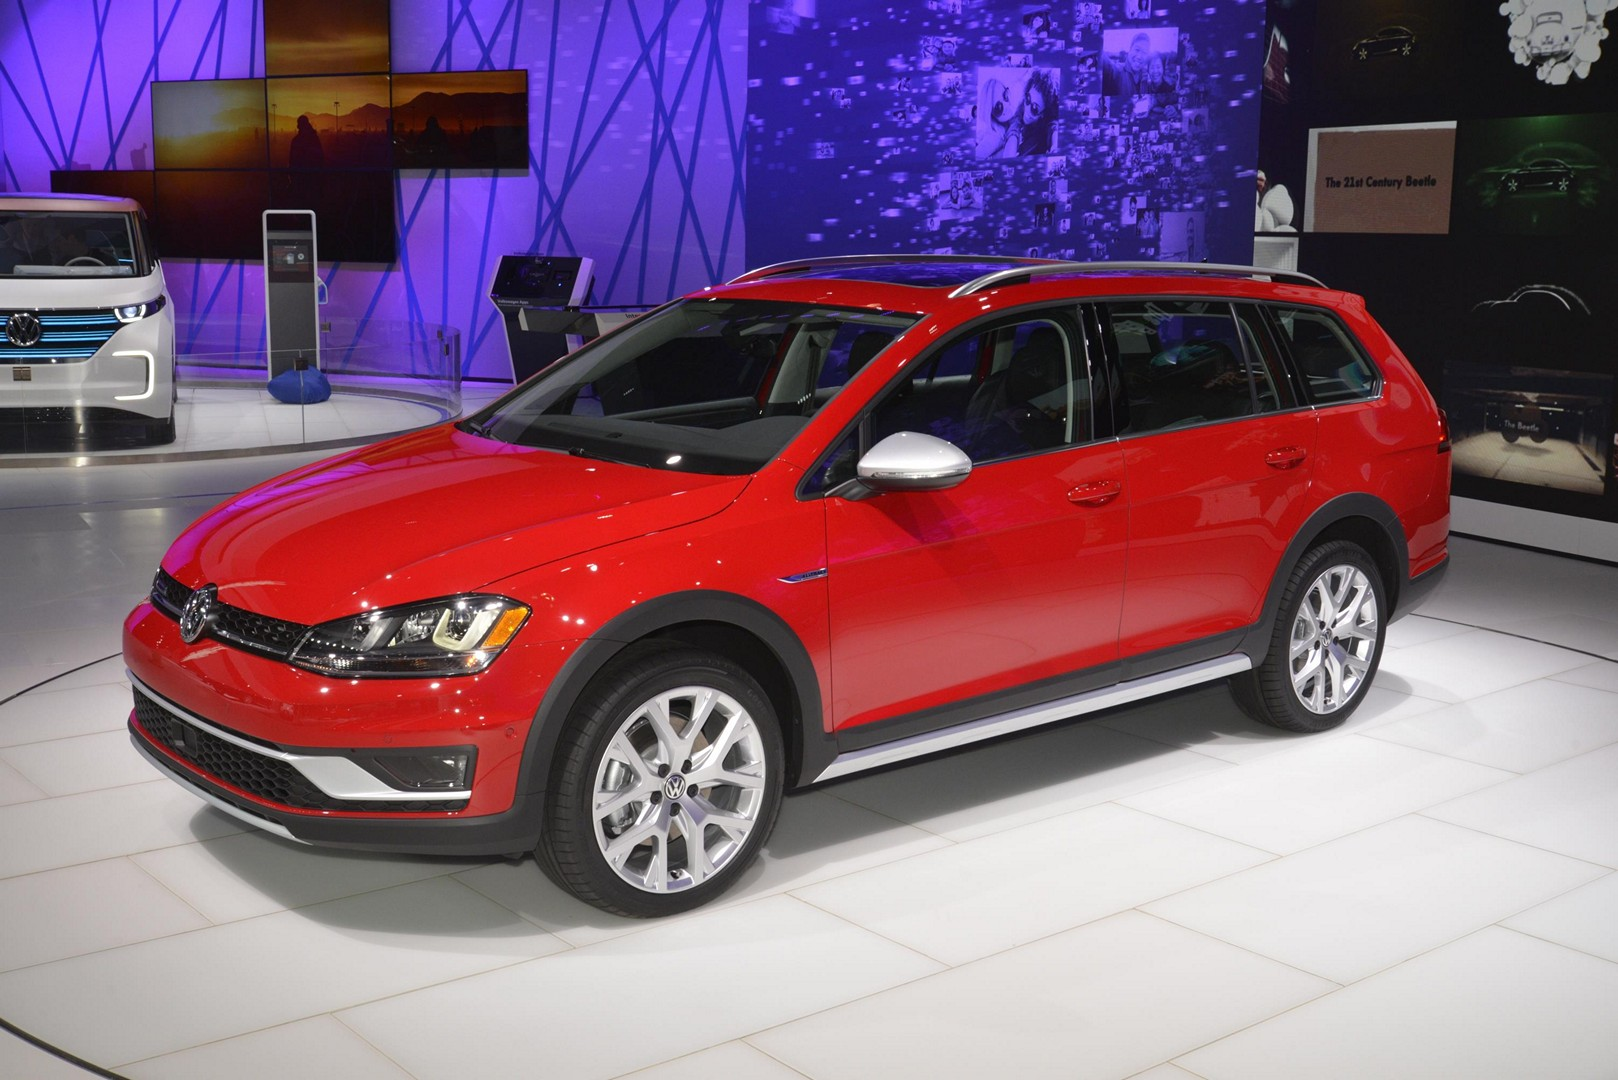 2017 Vw Golf Alltrack Has Dual Exhaust And Red Paint Like A Gti In New York